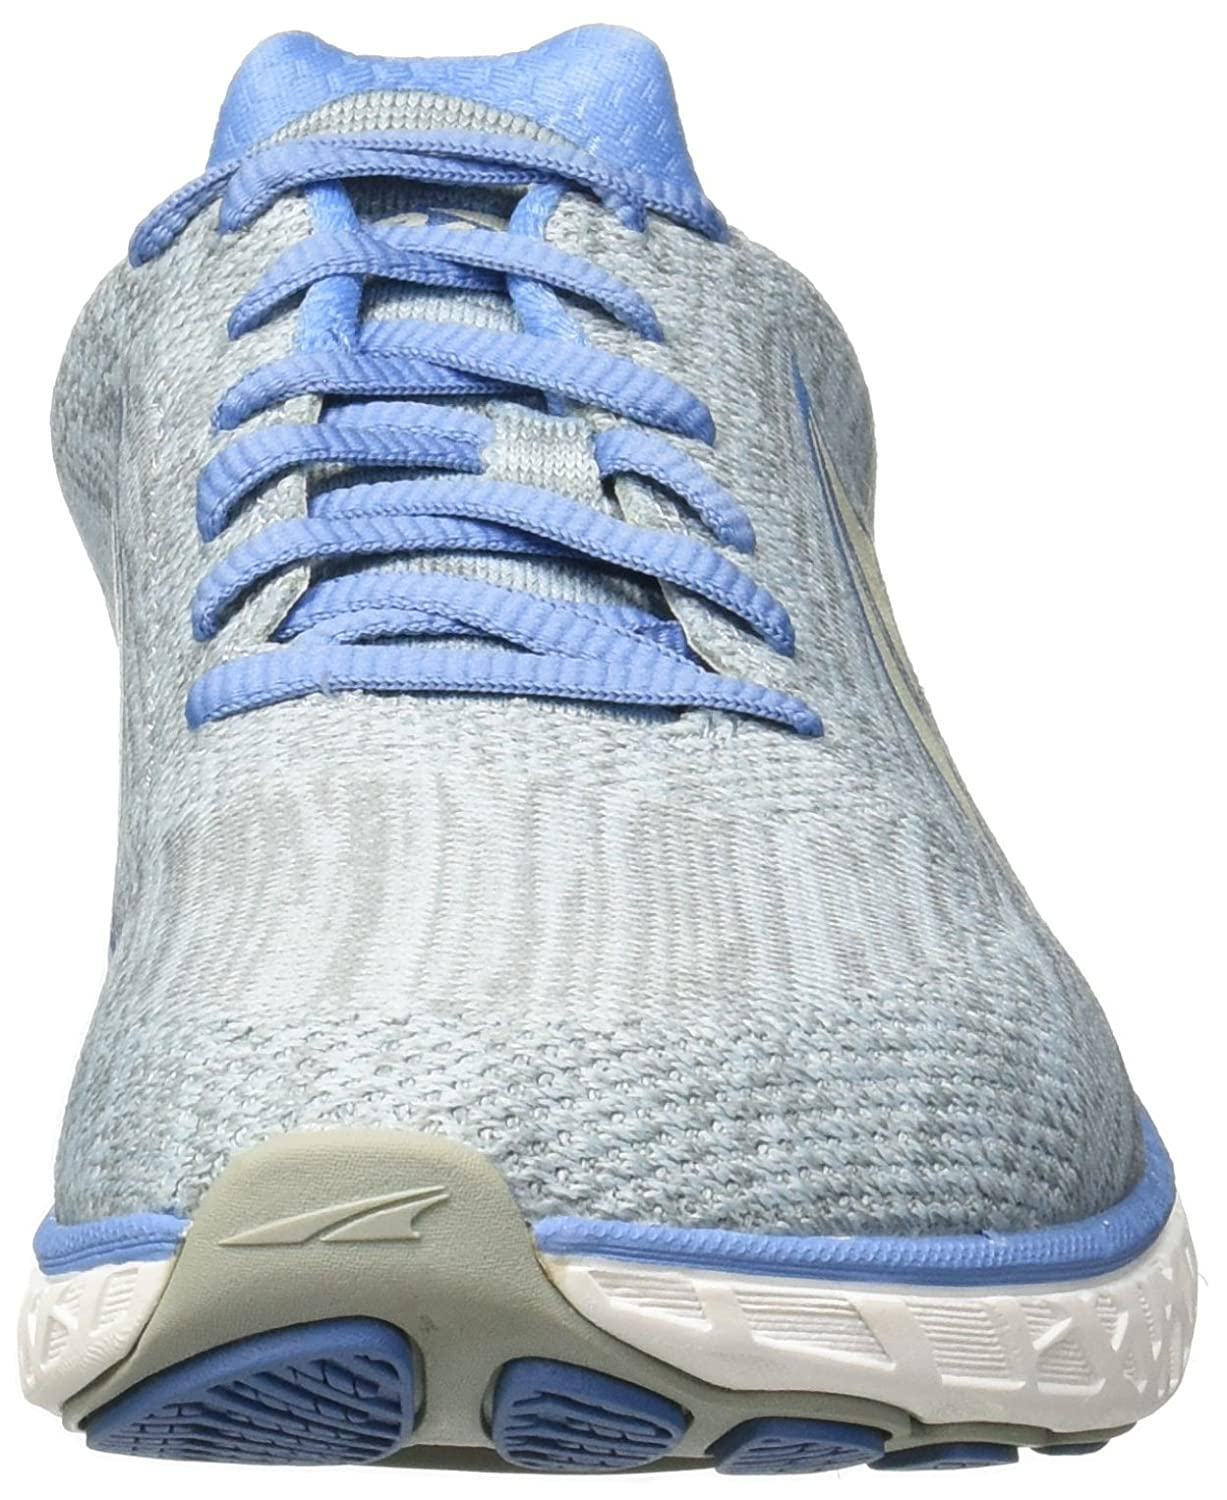 Altra Escalante Running Shoe - Women's B07BT4TD3Q 9.5 B(M) US|Gray/Blue